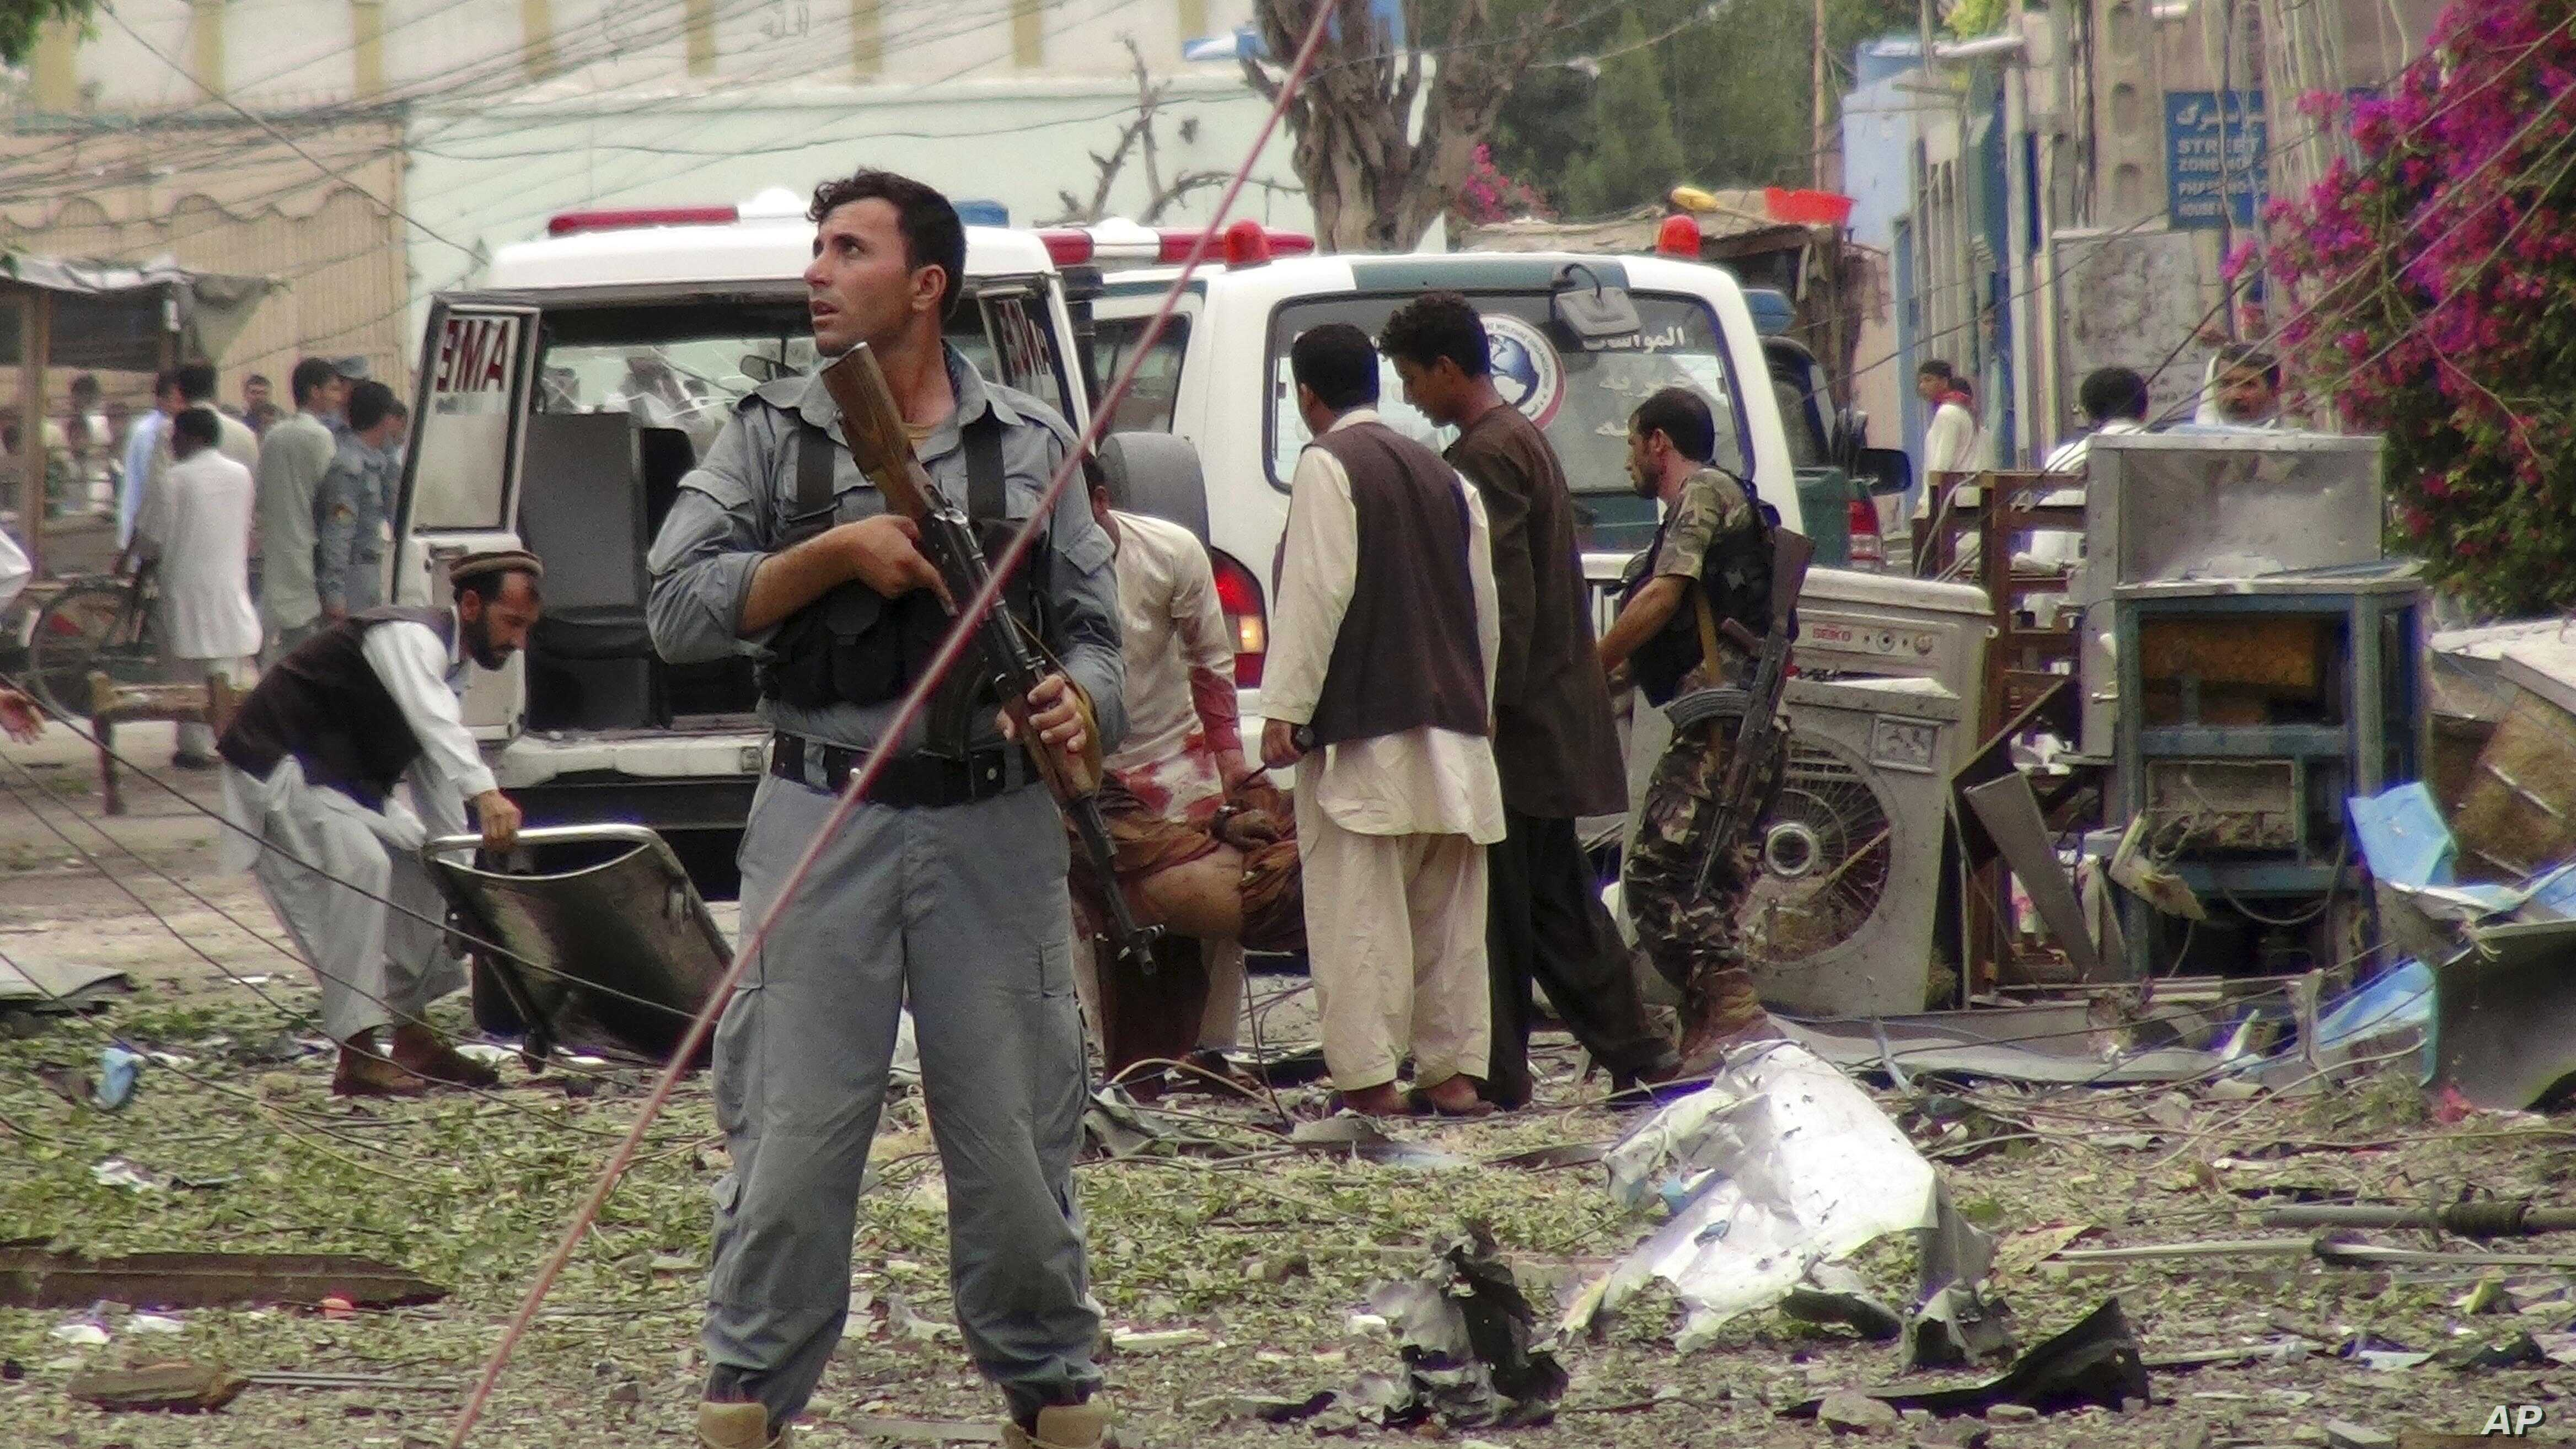 Security officials conduct investigation at the scene of suicide bomb attacks in Jalalabad, Afghanistan, Aug. 3, 2013.